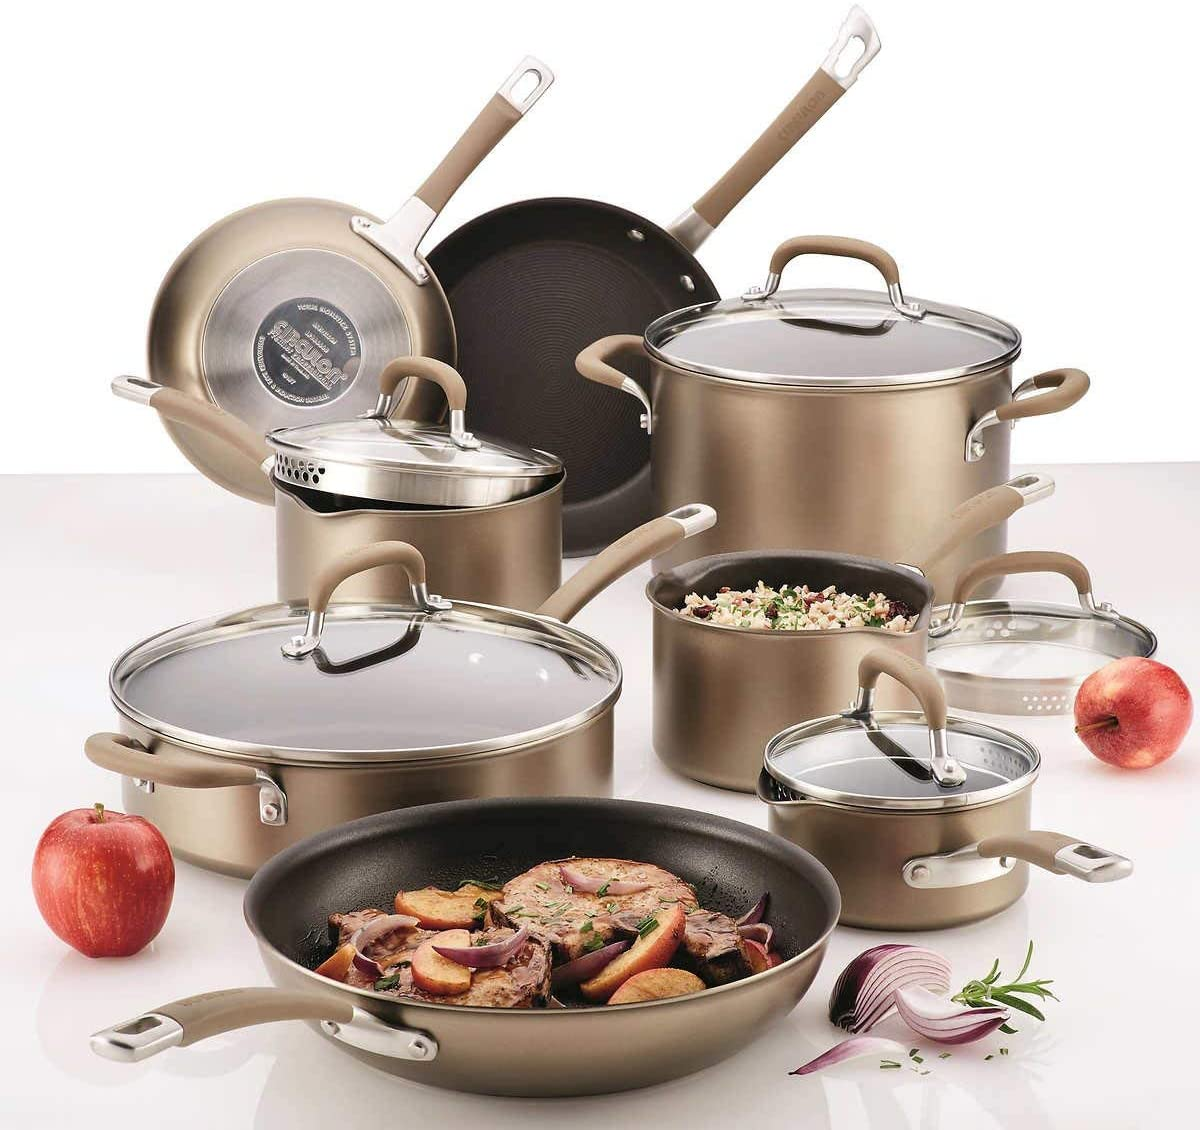 Circulon Premier Professional 13-Piece Hard-Anodized Cookware Set (8 Cooking Vessels and 5 Lids)